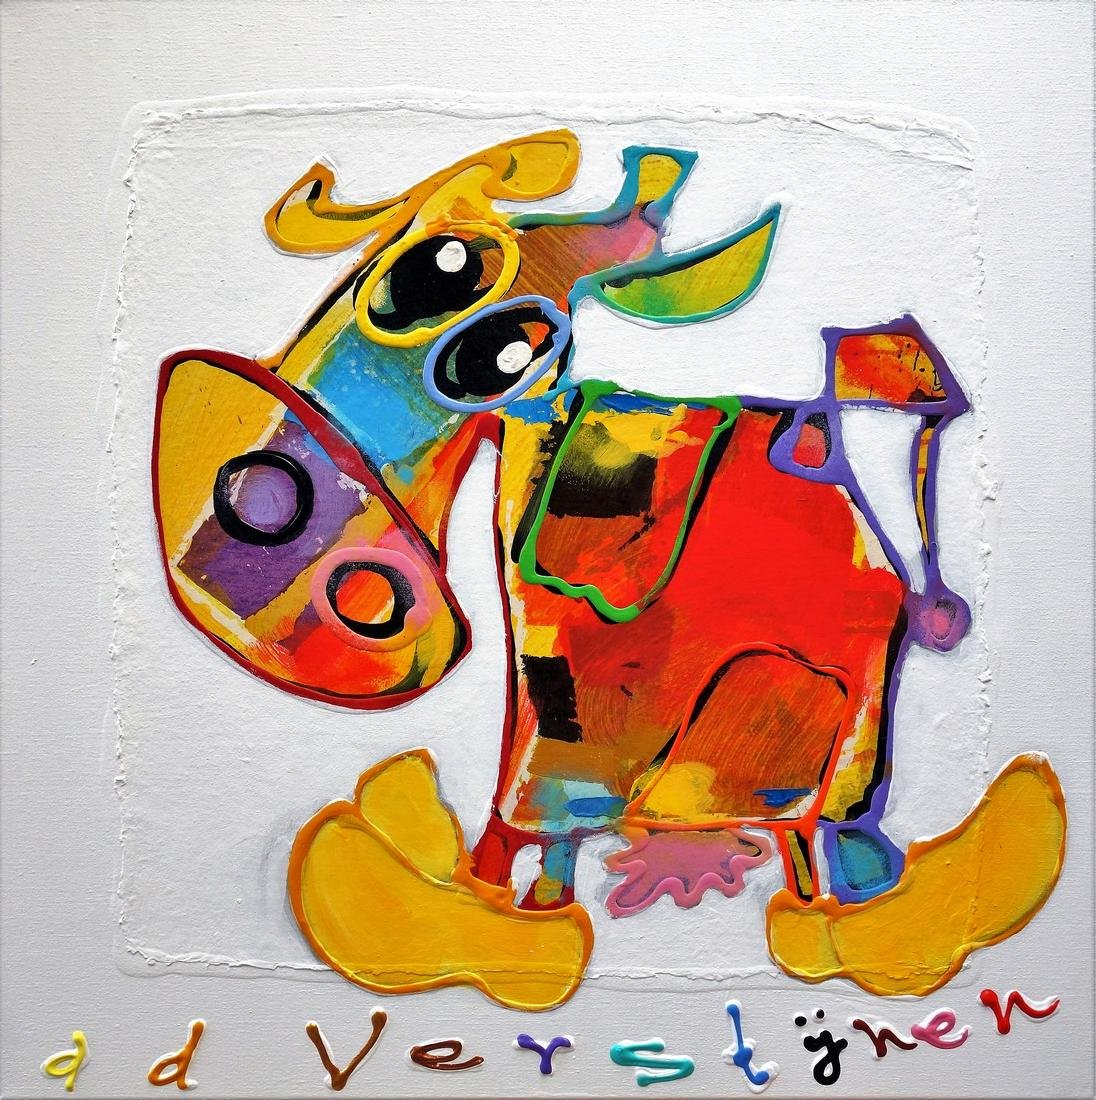 Cow in color on clogs Ad Verstijnen Original painting